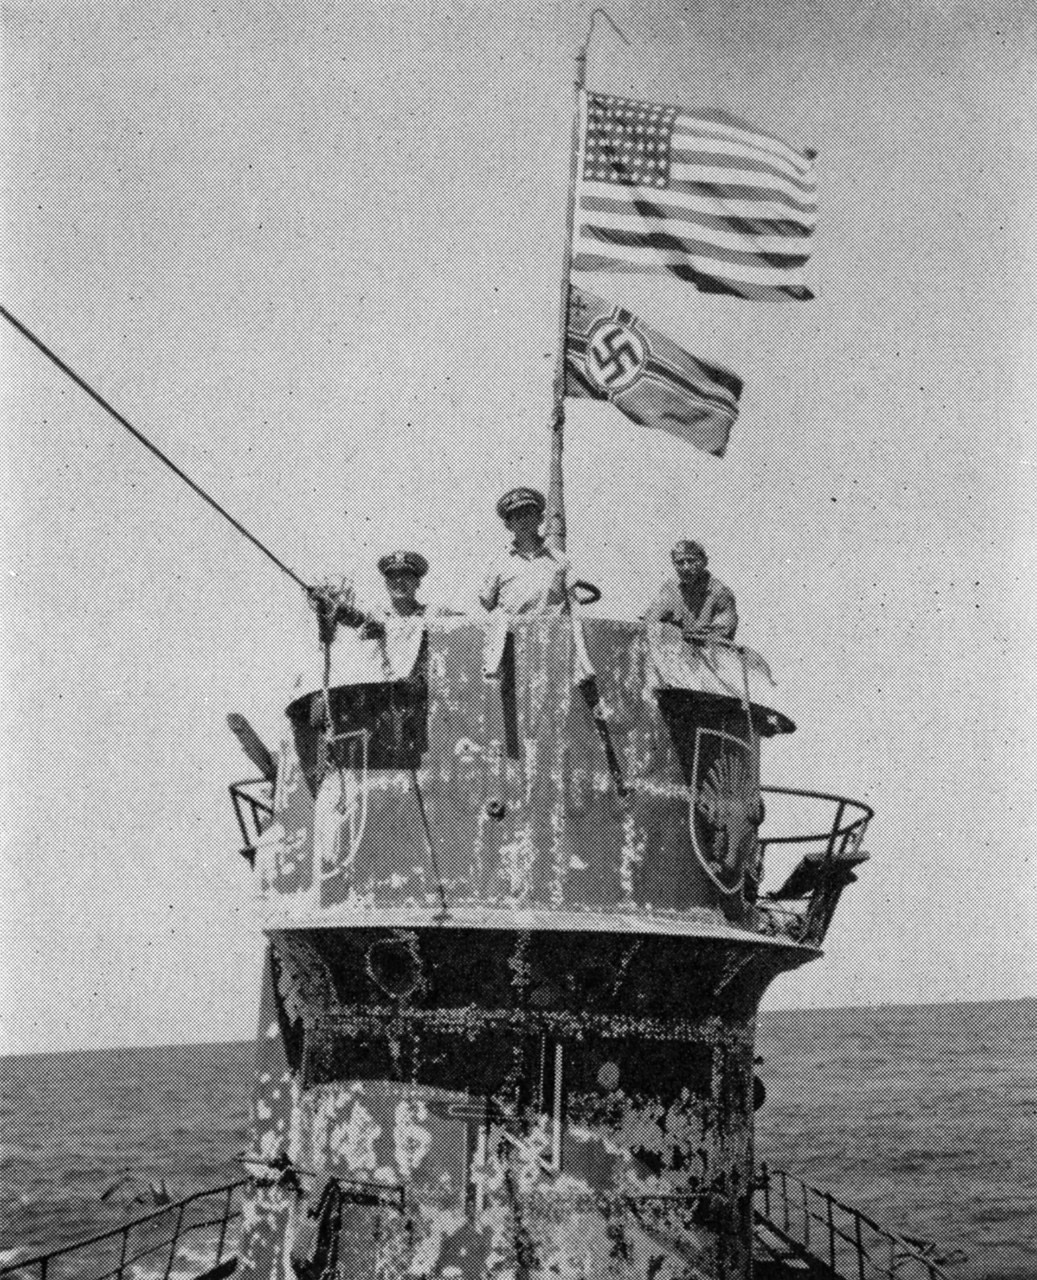 Two flags fly above three men standing on the conning tower of a submarine in the ocean.